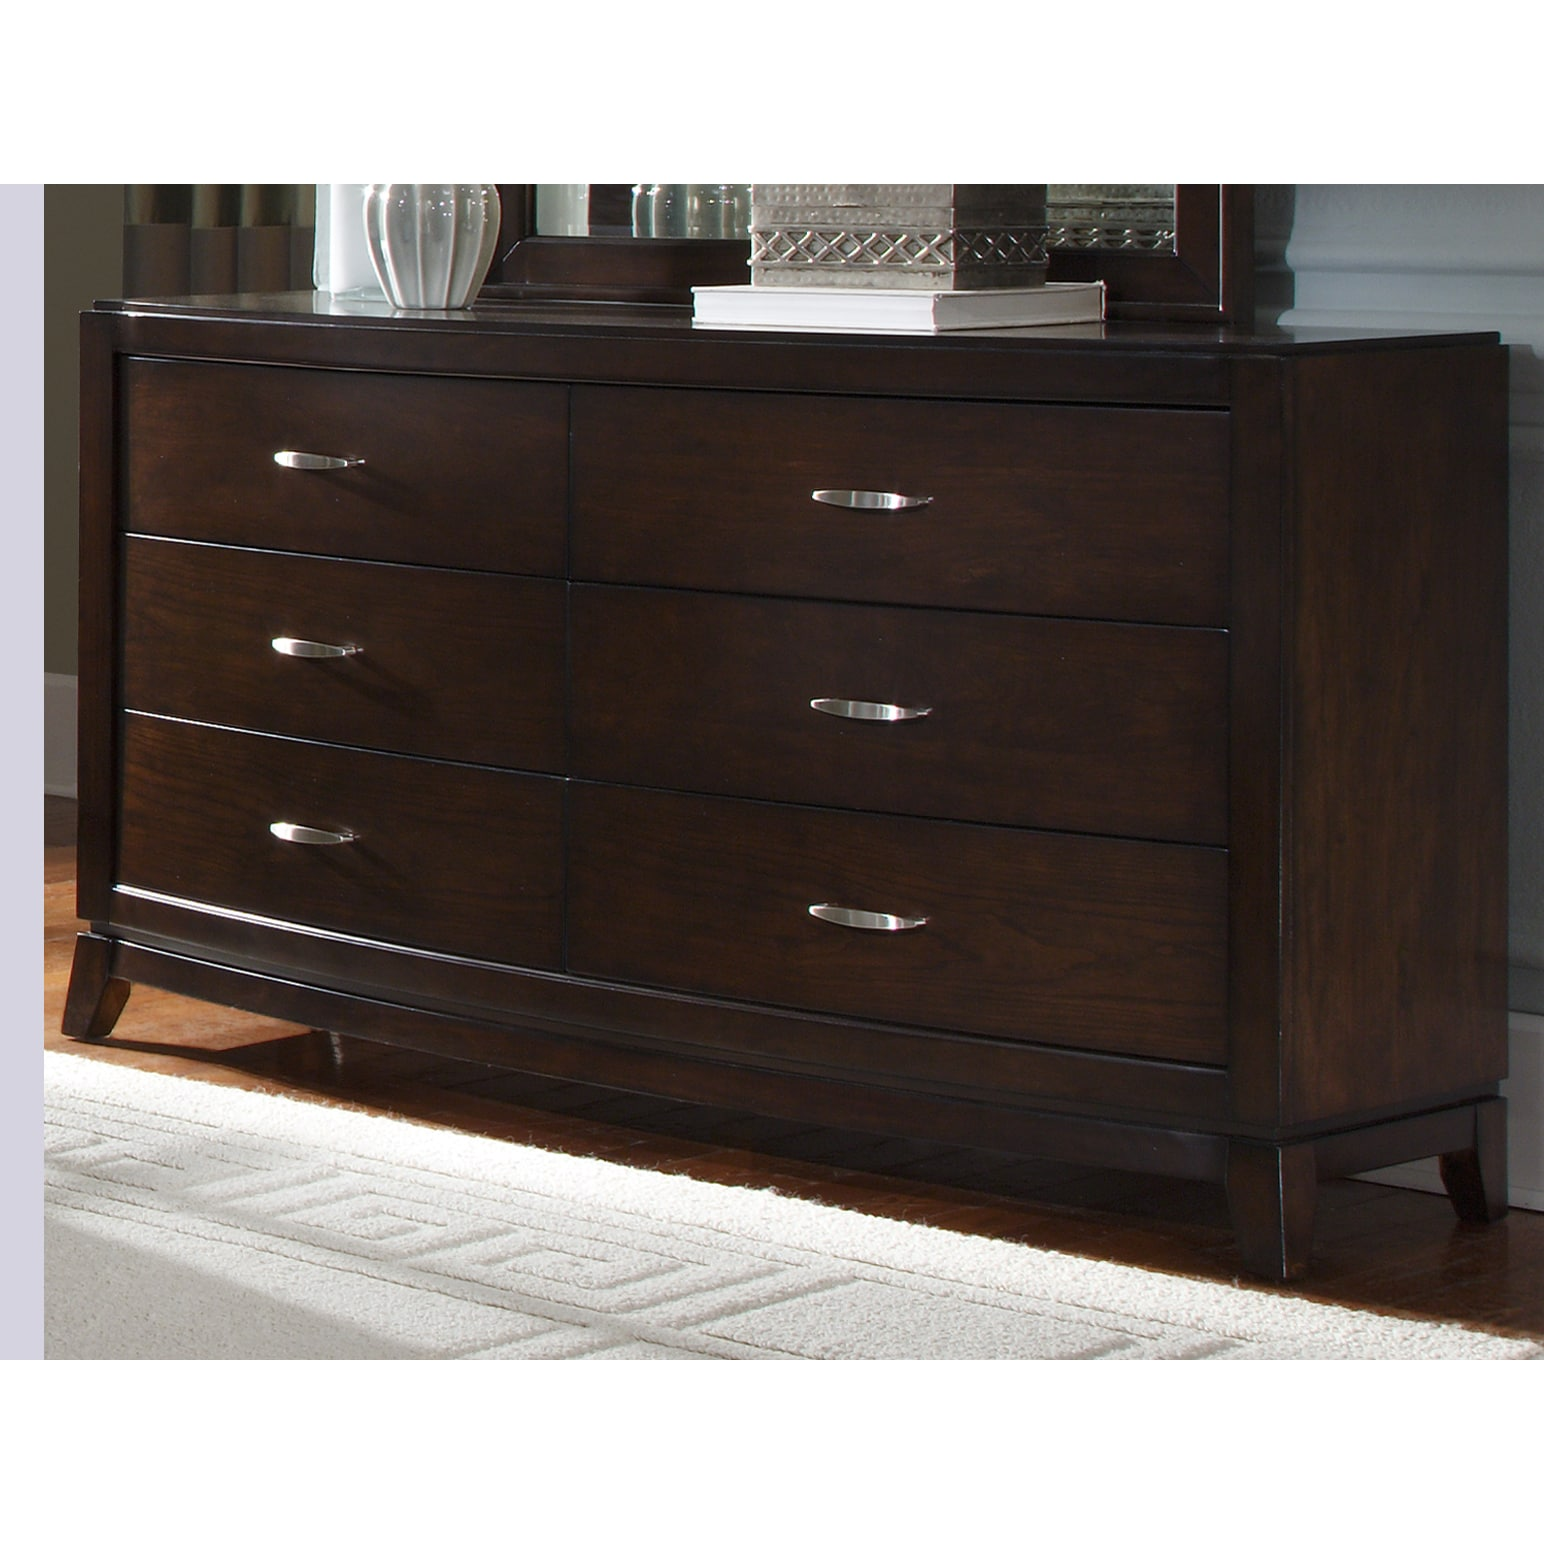 Liberty Avalon Dark Truffle 6-drawer Dresser